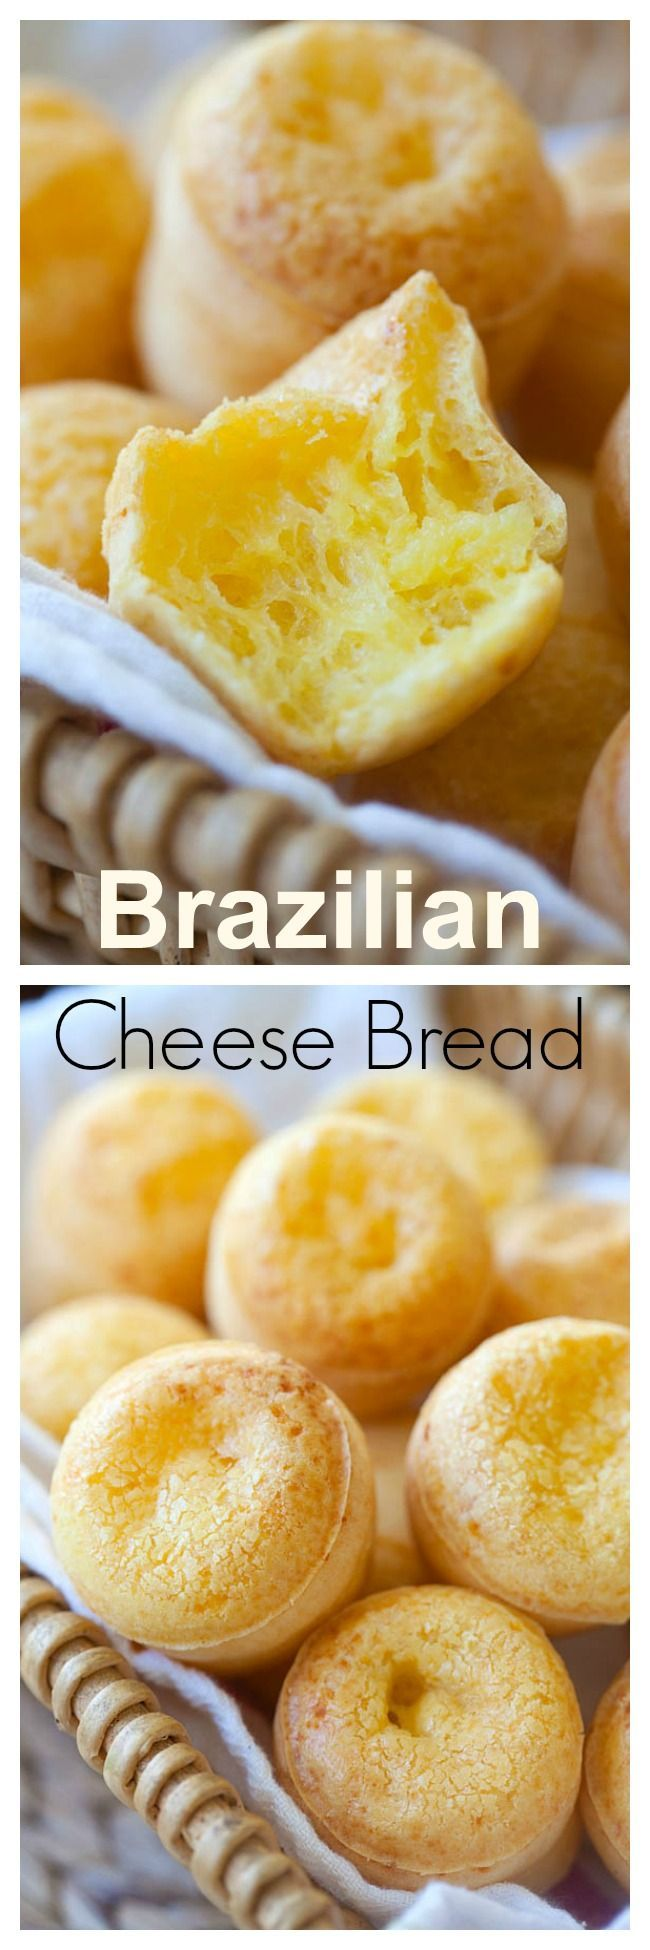 Brazil - cheese bread (Pão de Queijo) - easy 20-min recipe that yields the best and cheesiest bread, recipe by @simplyrecipes   rasamalaysia.com